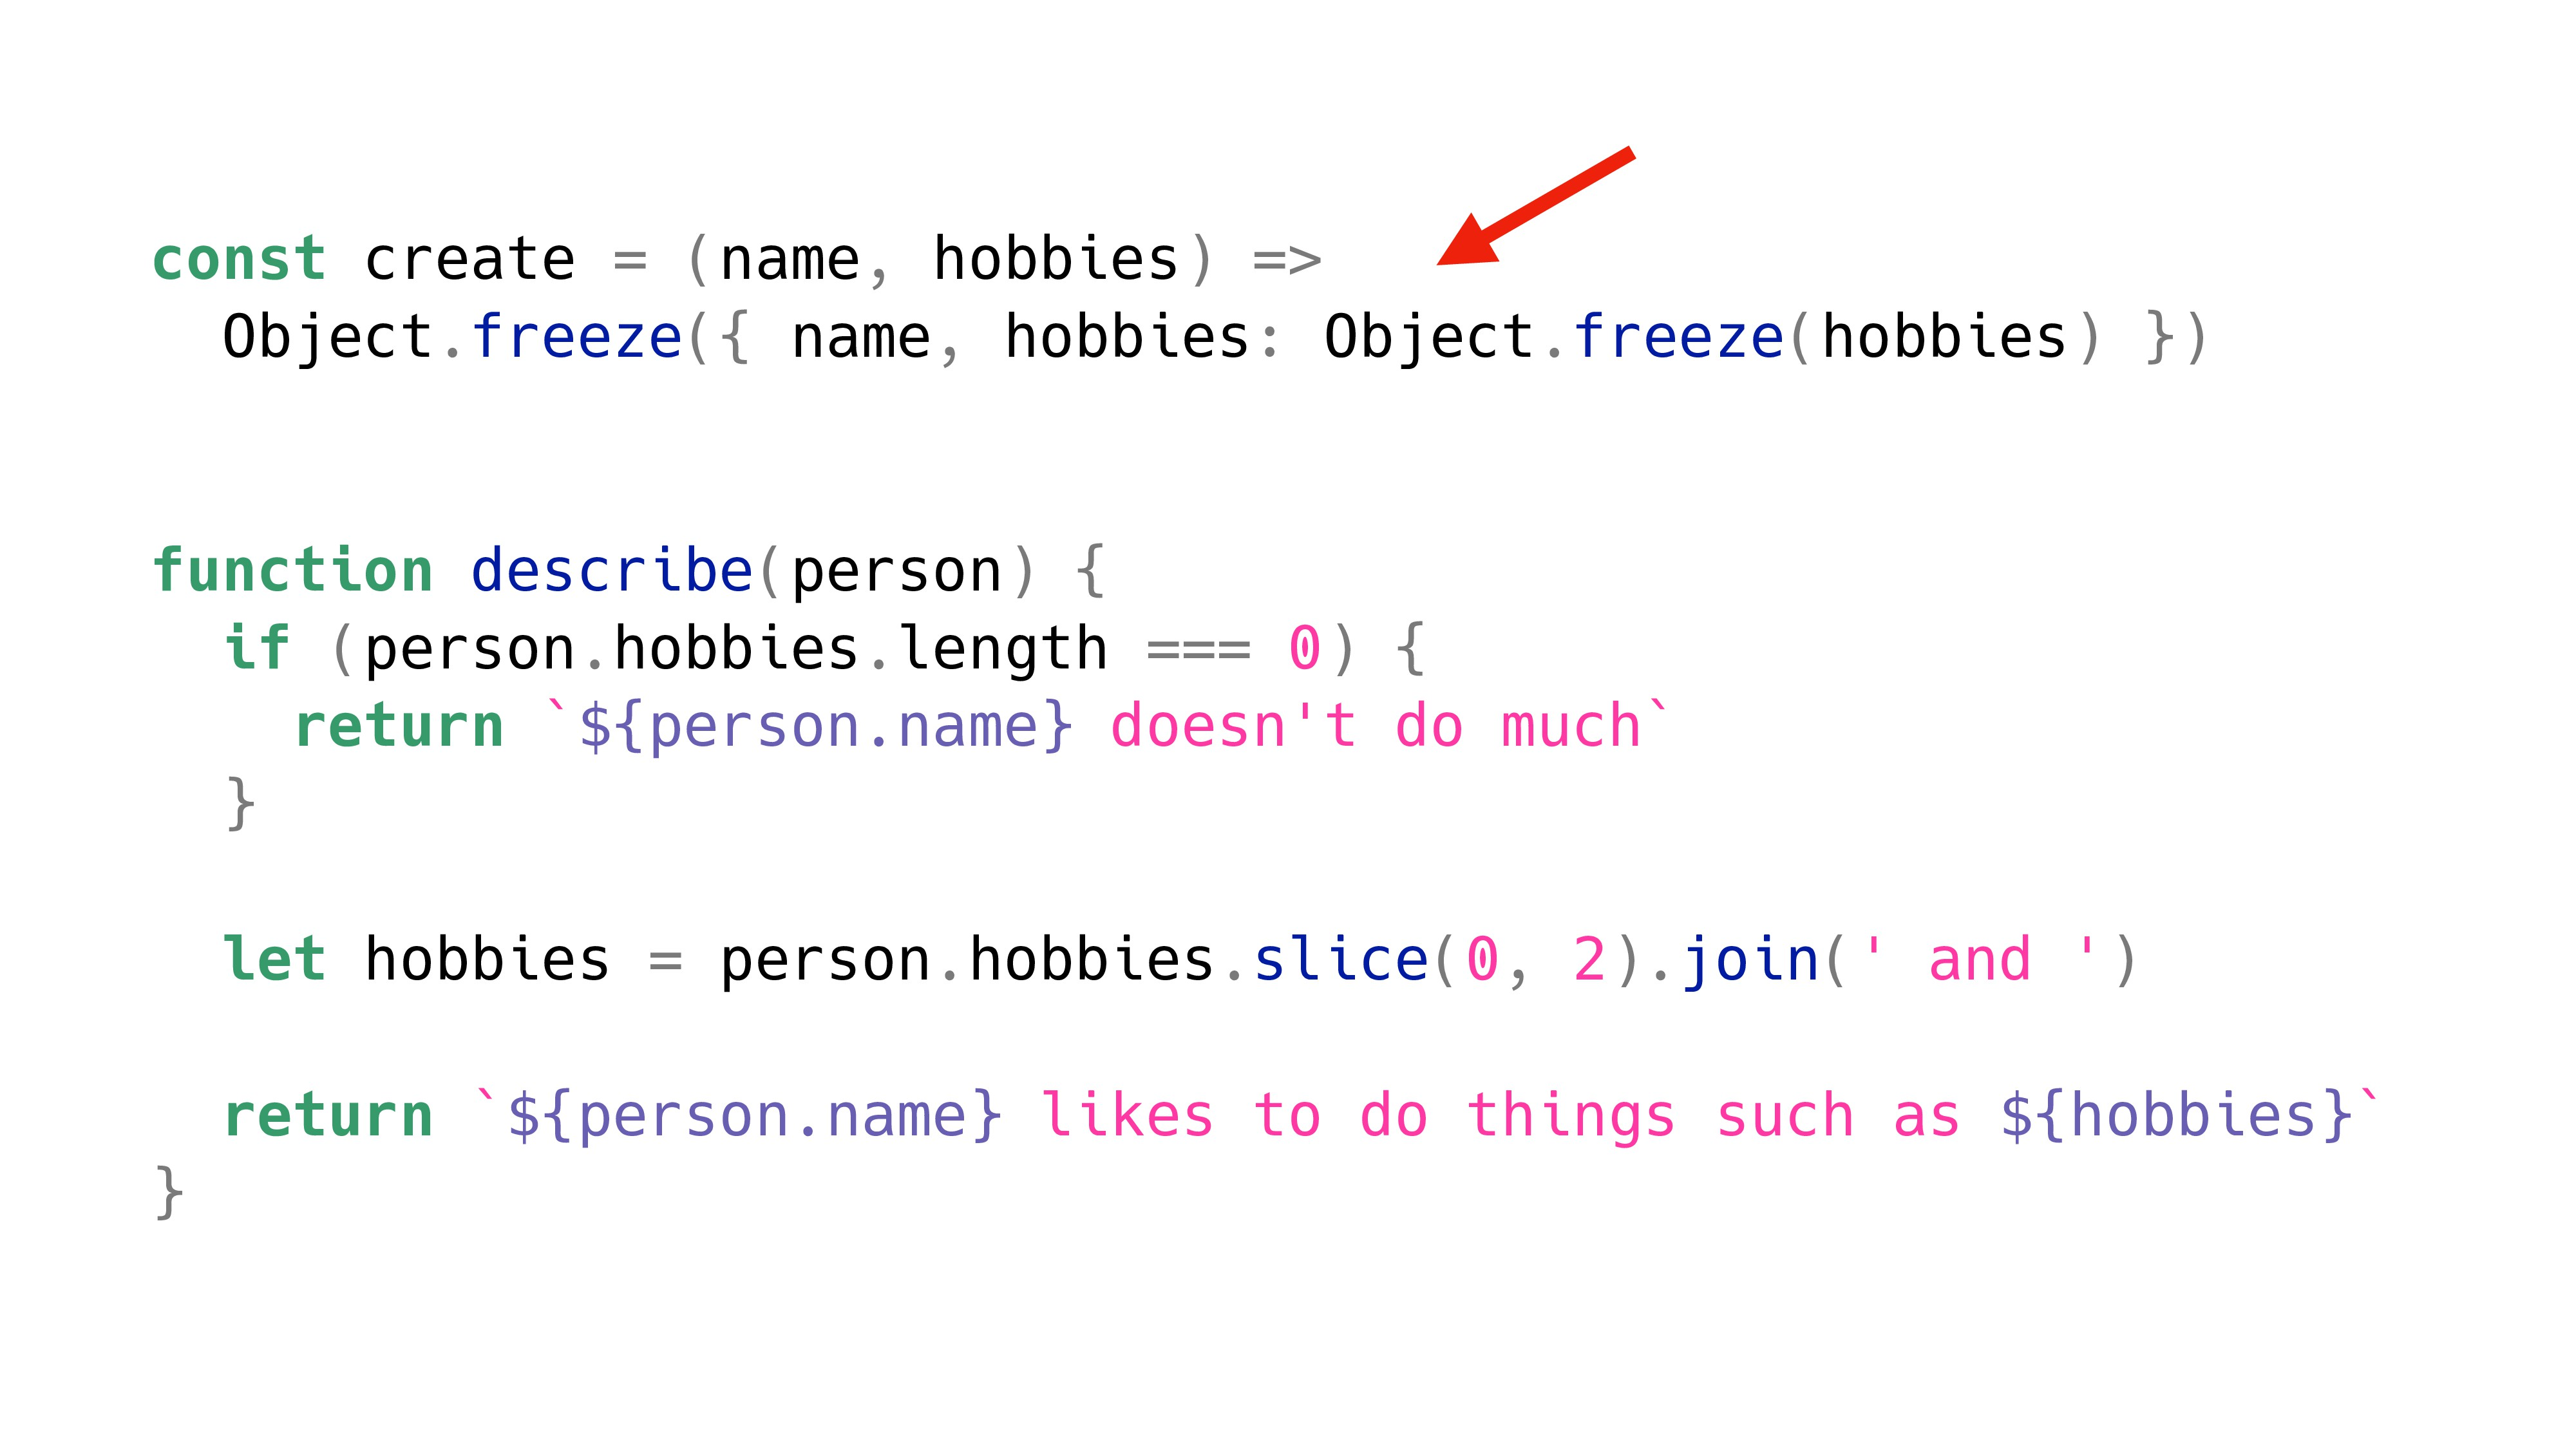 const create = (name, hobbies) => Object.freeze...